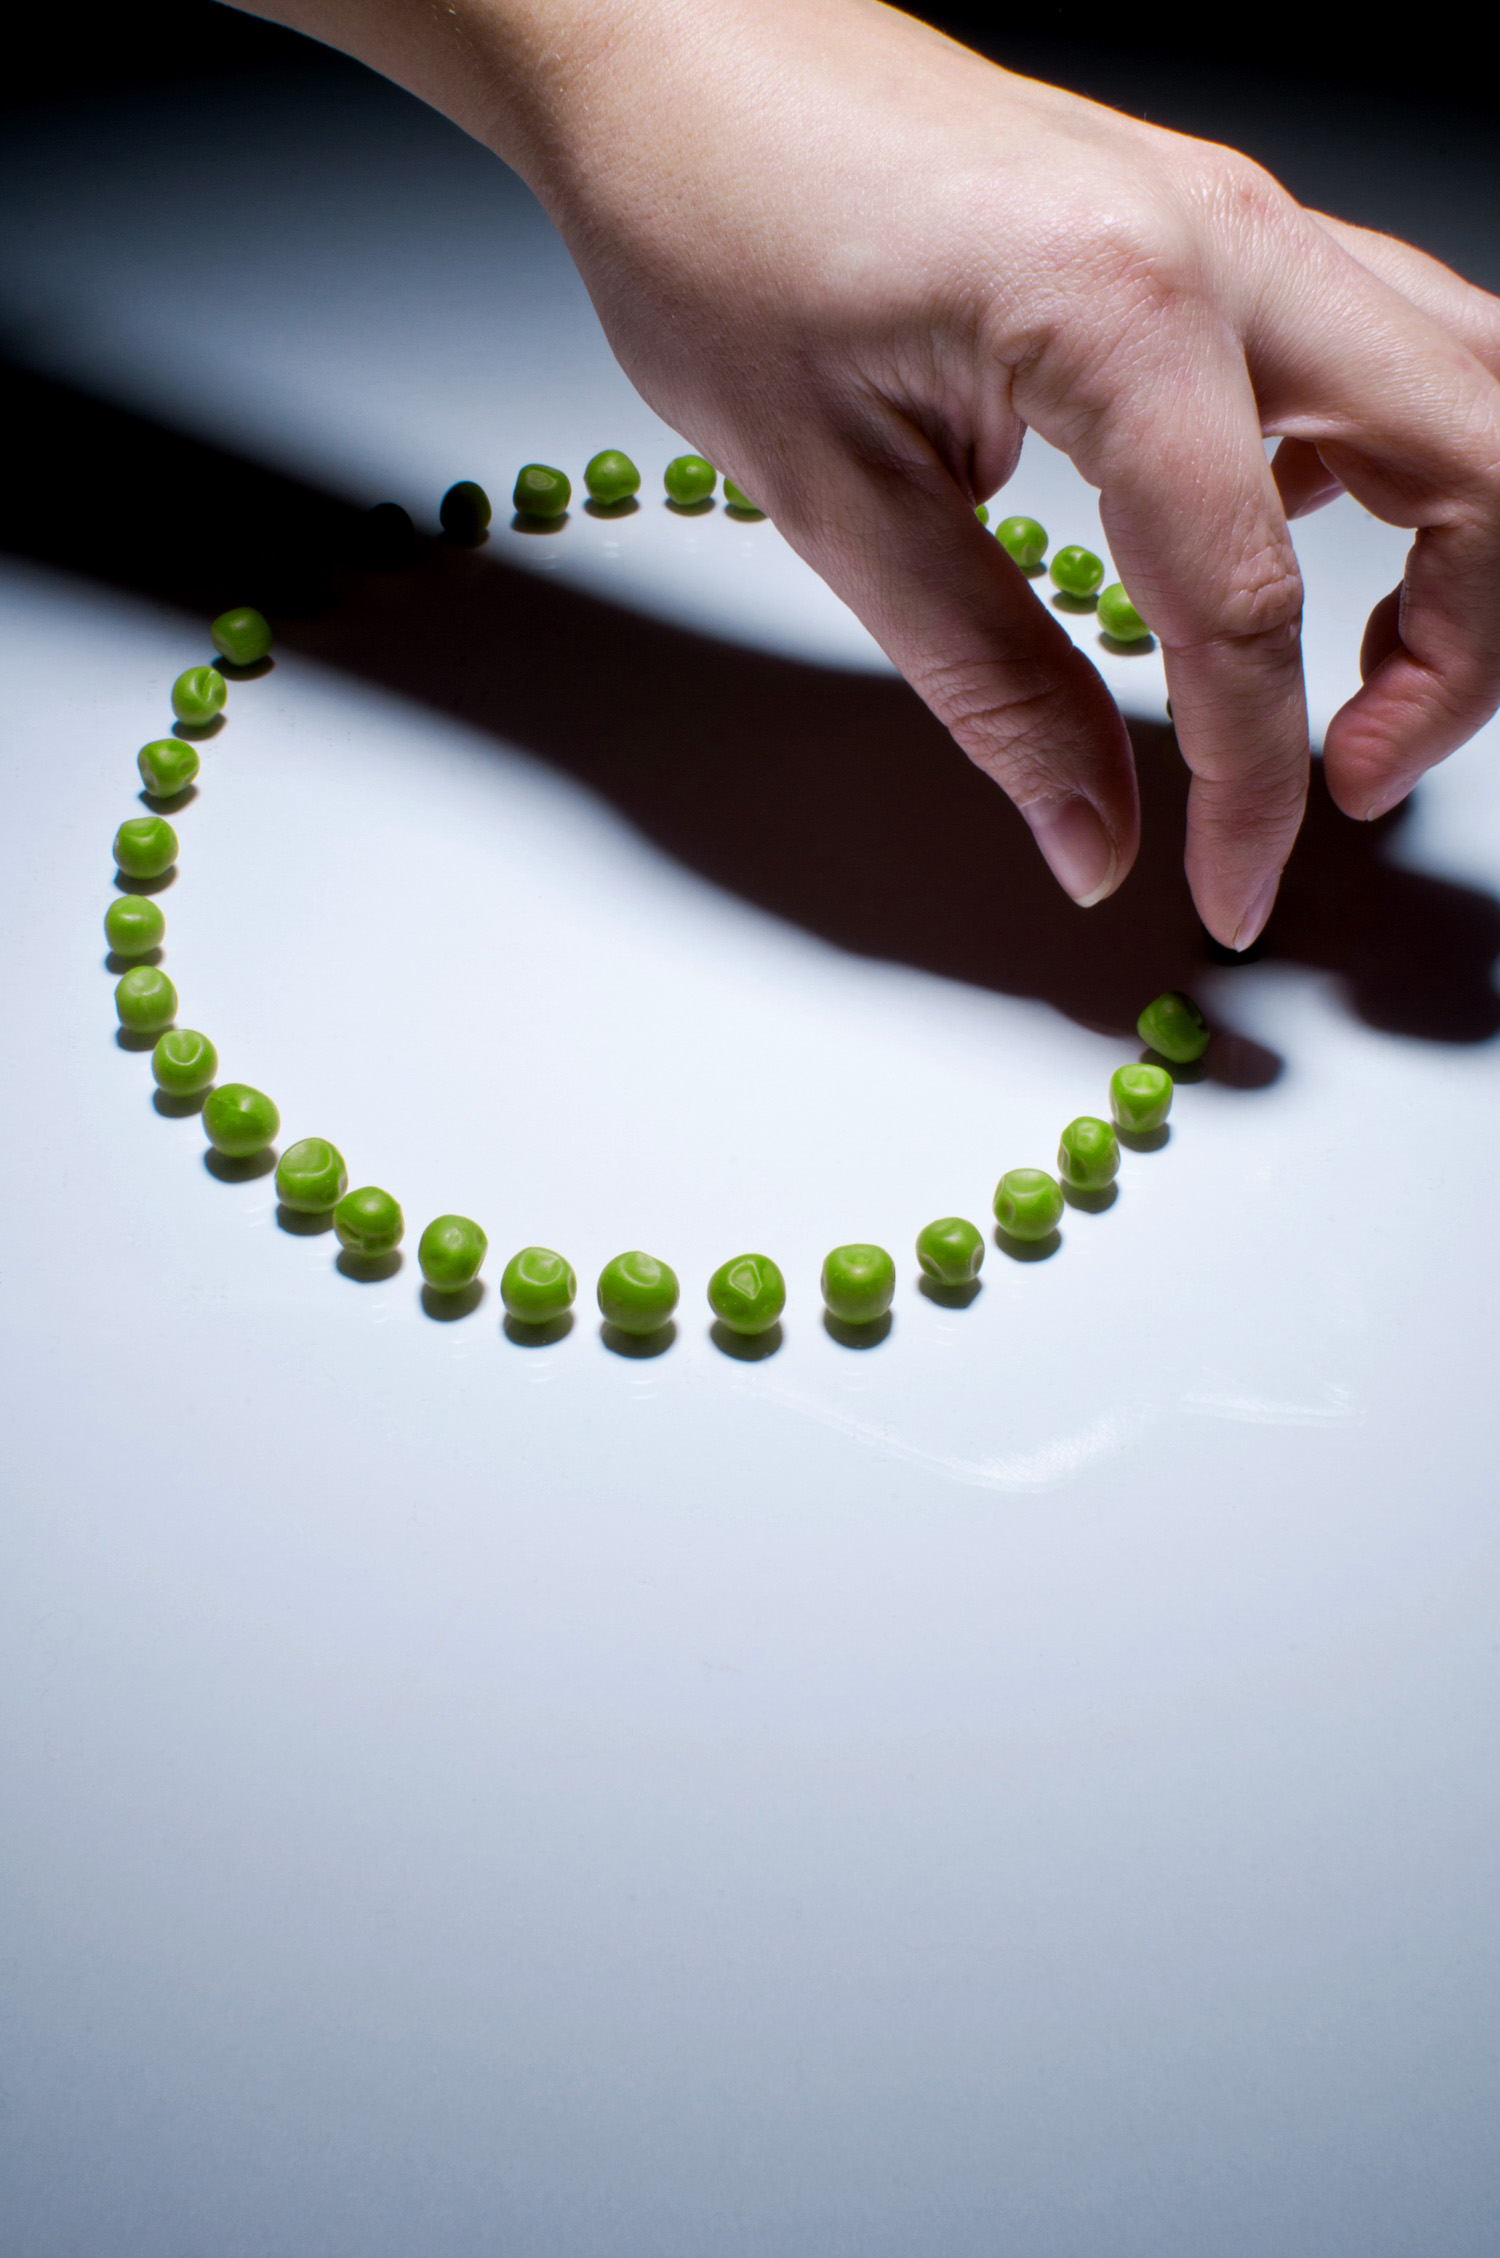 Hand and Peas